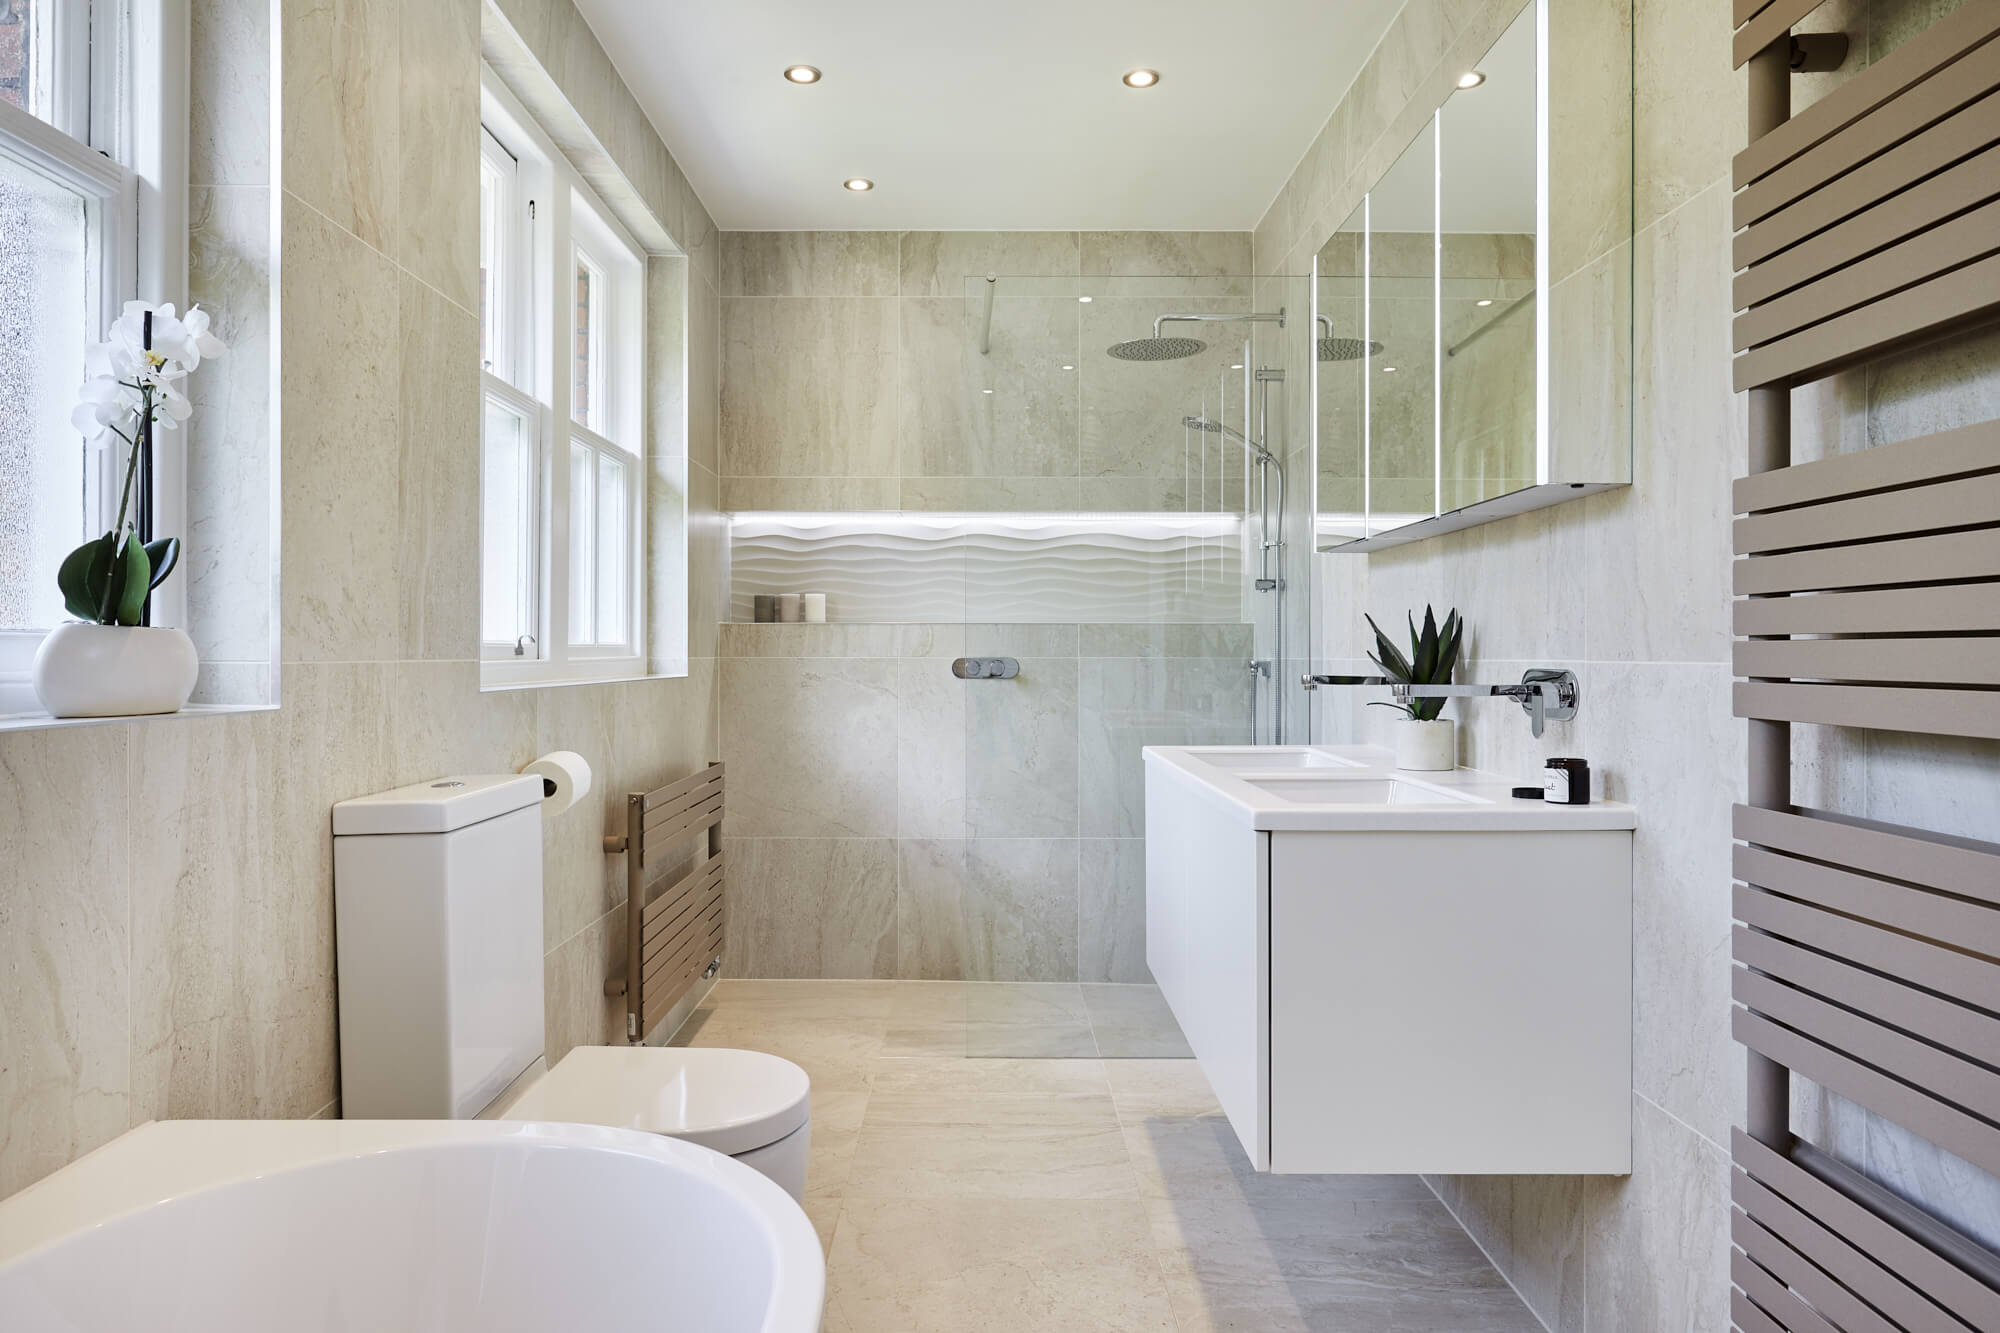 wetroom with separate bath